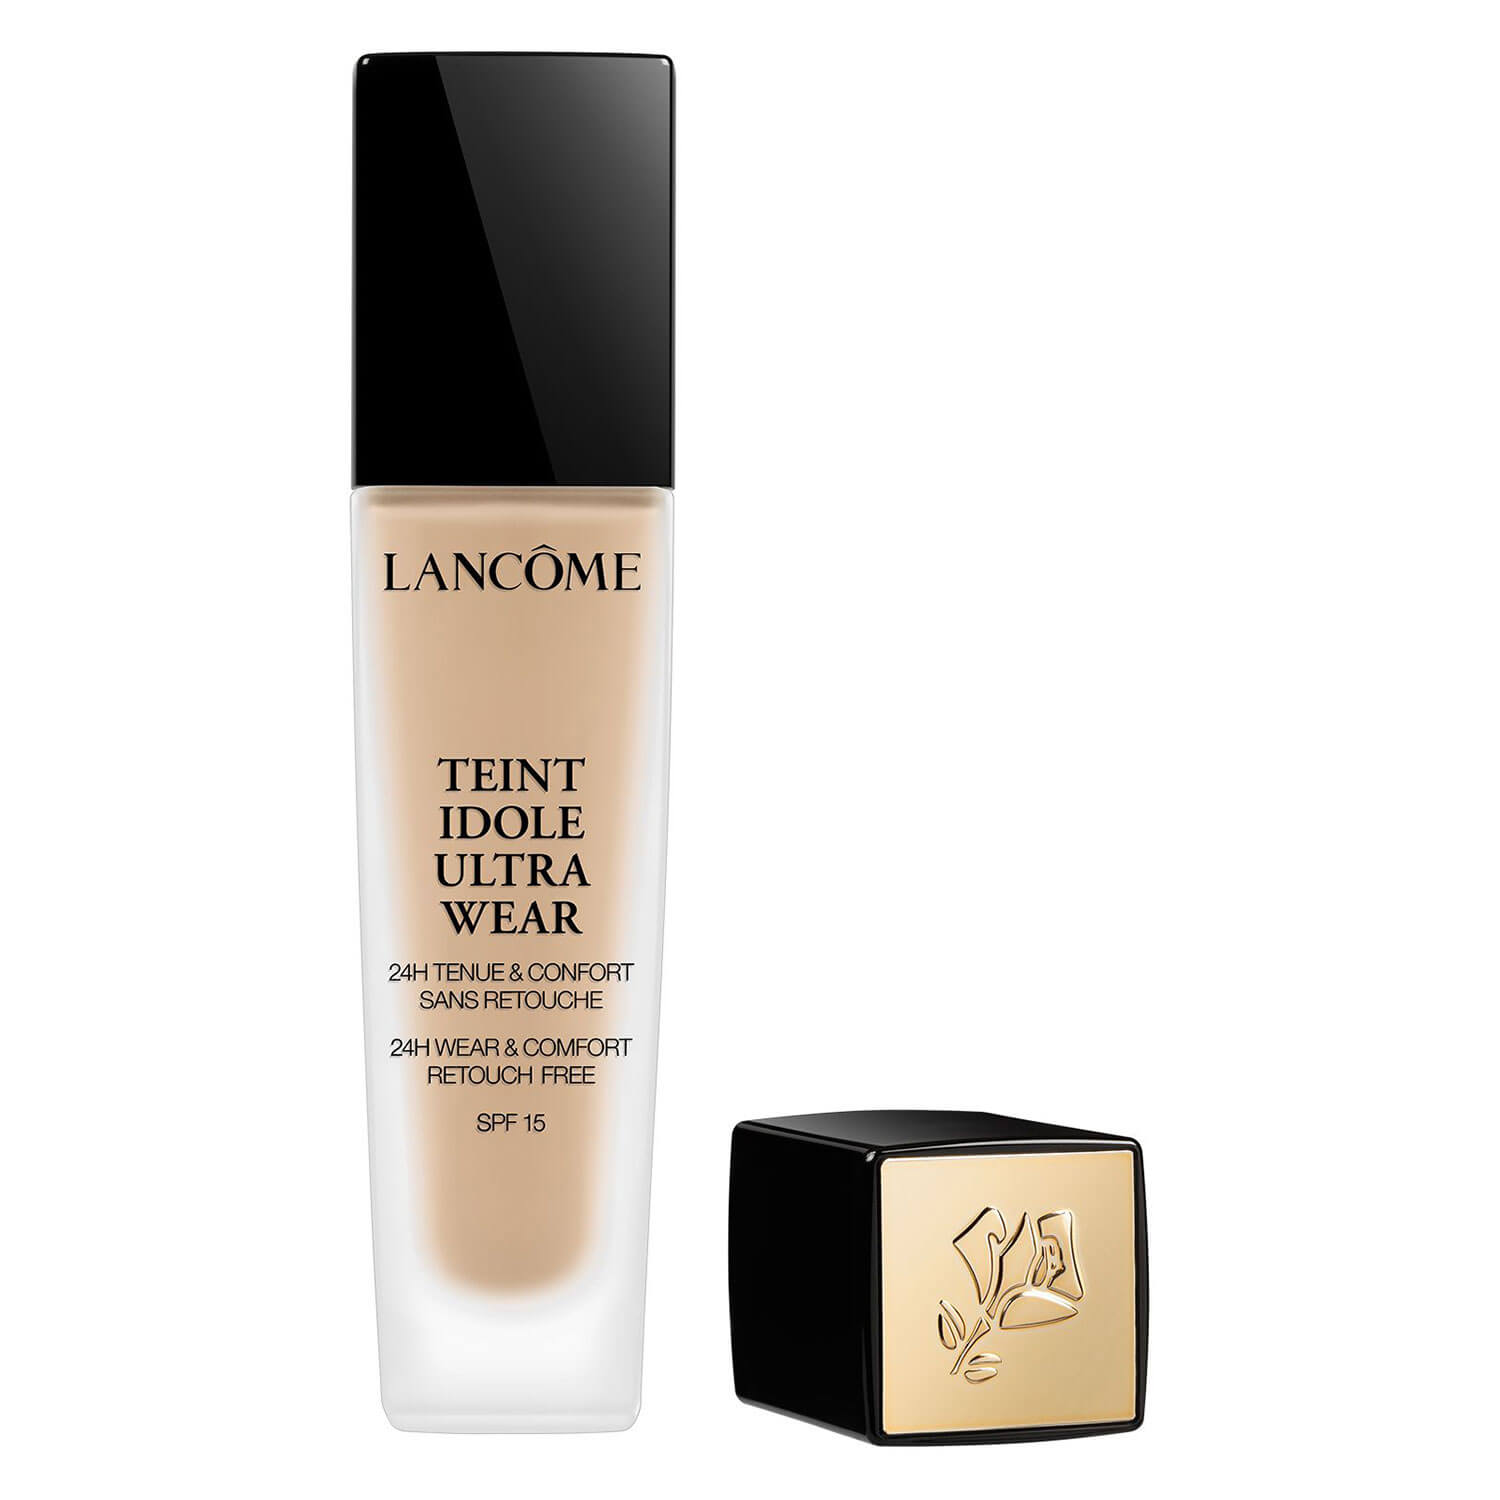 Teint Idole Ultra Wear - Lys Rosé 02 - 30ml